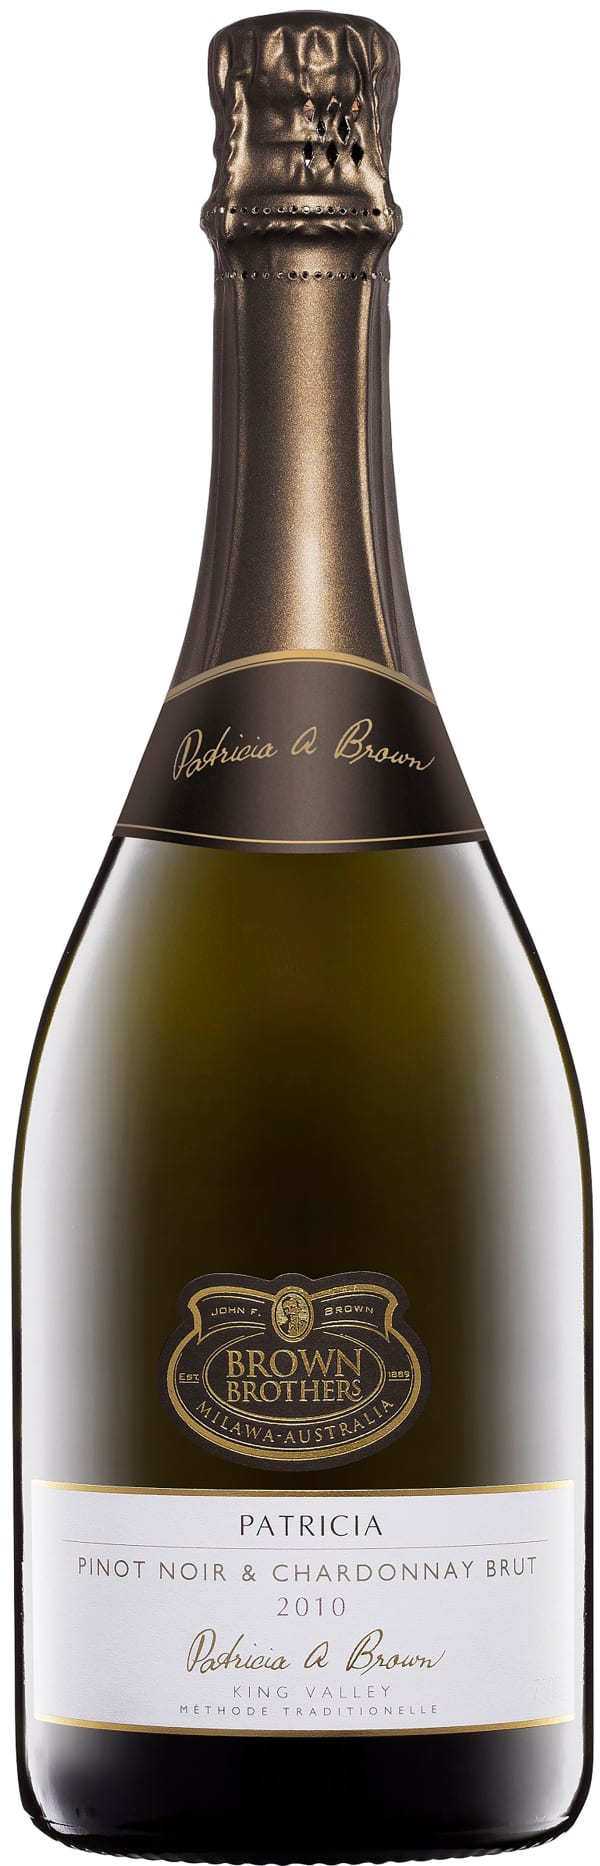 Brown Brothers Patricia Pinot Noir Chardonnay Brut 2010